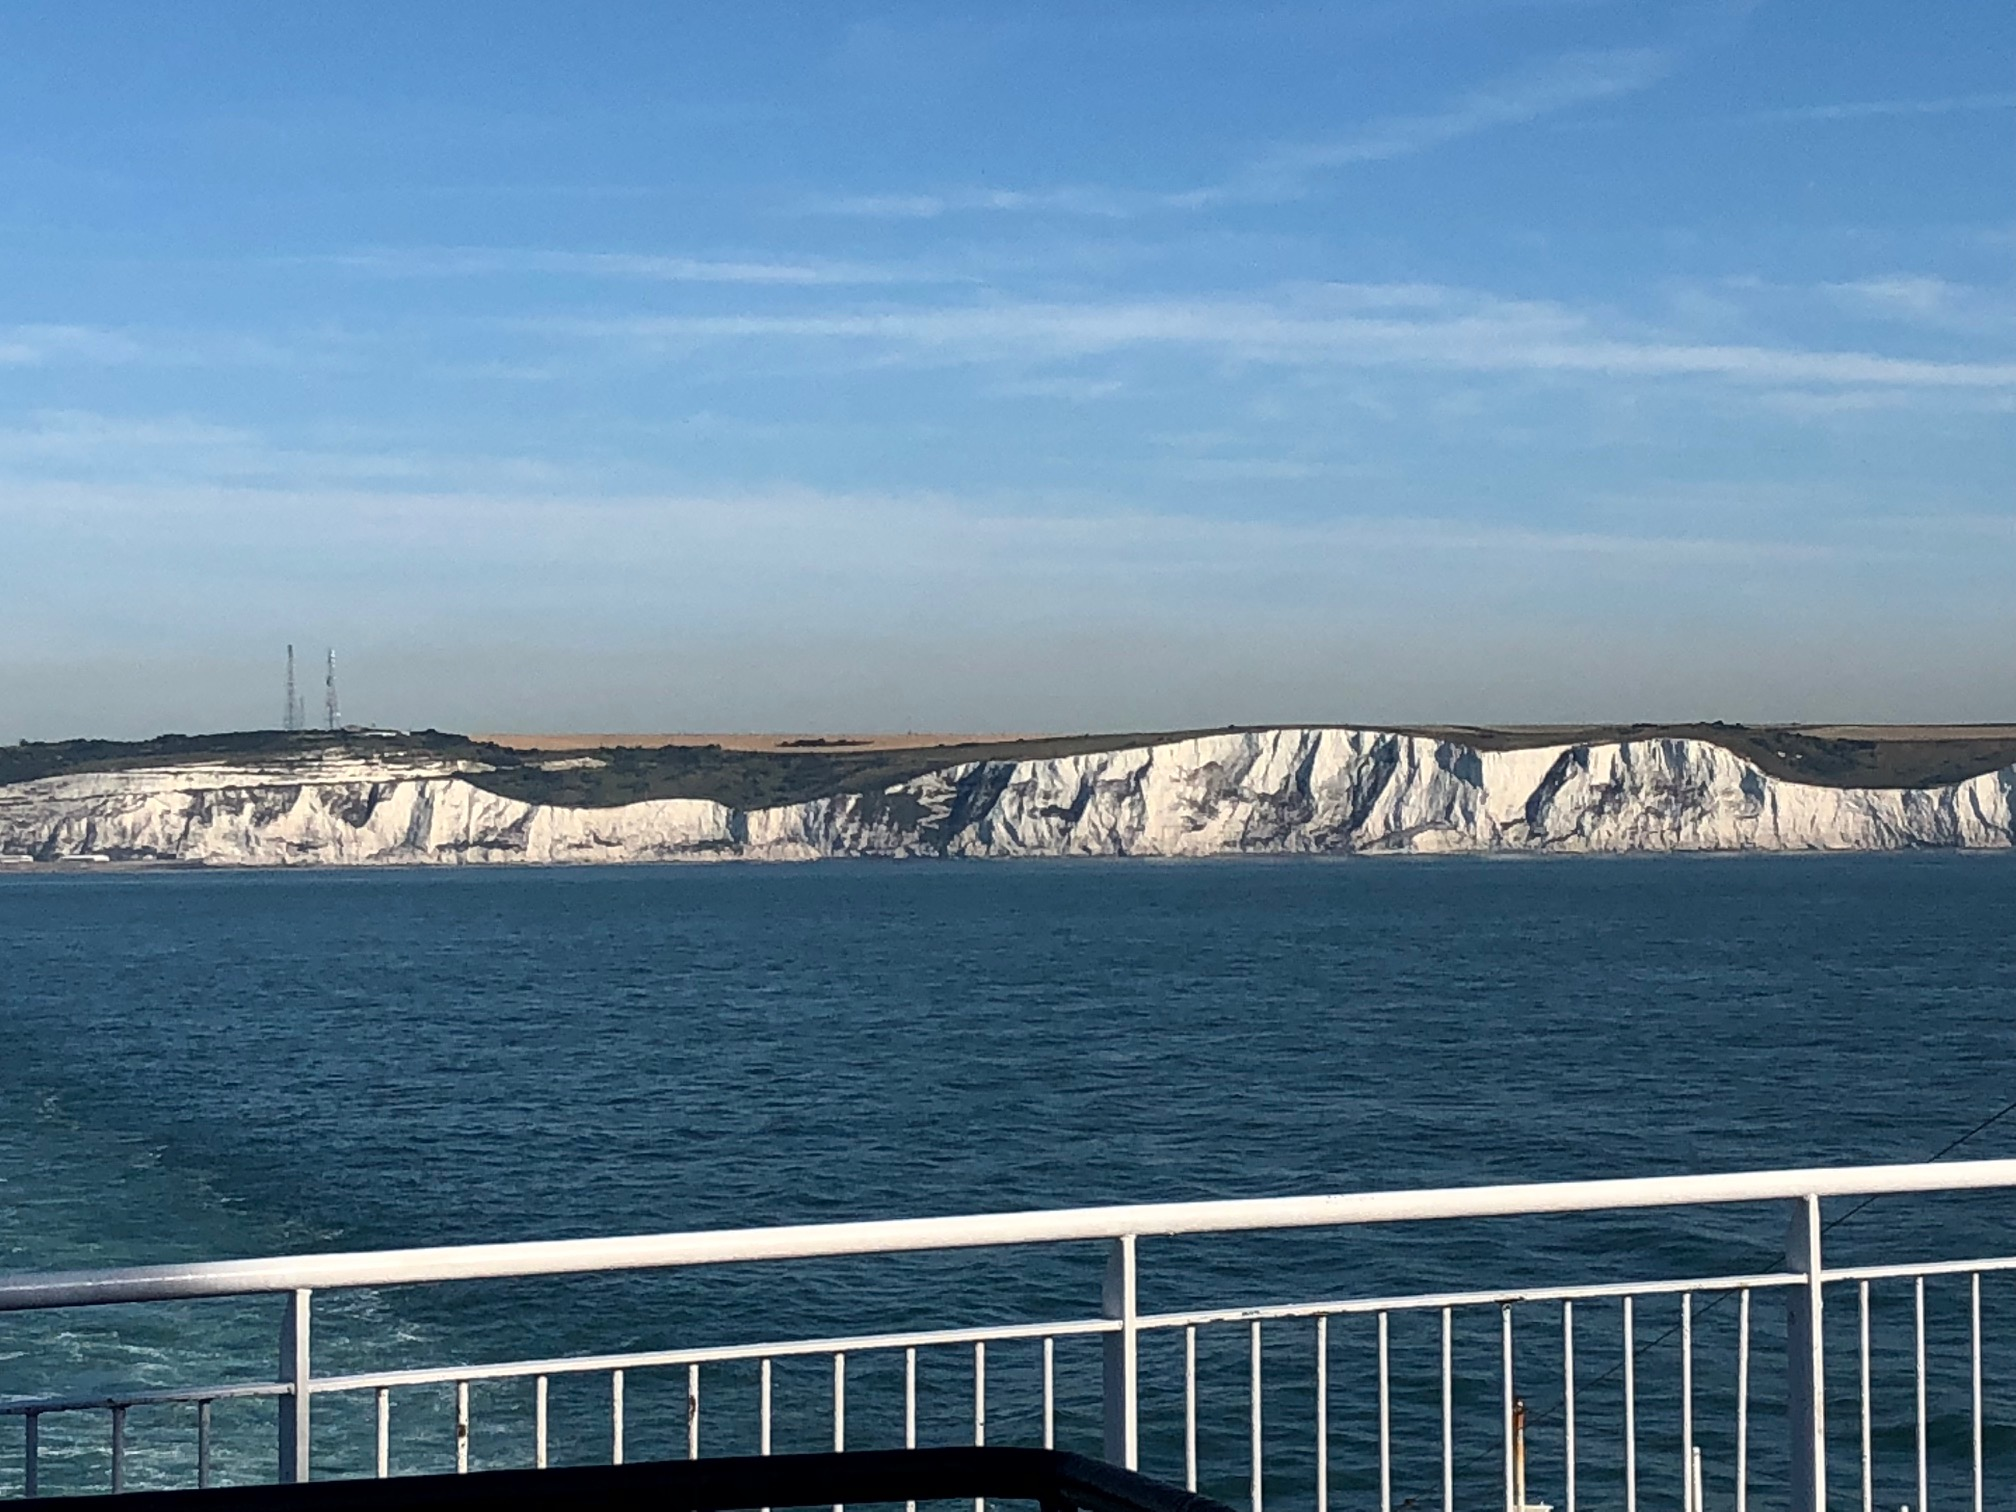 The famous Cliffs of Dover. Dover, England.